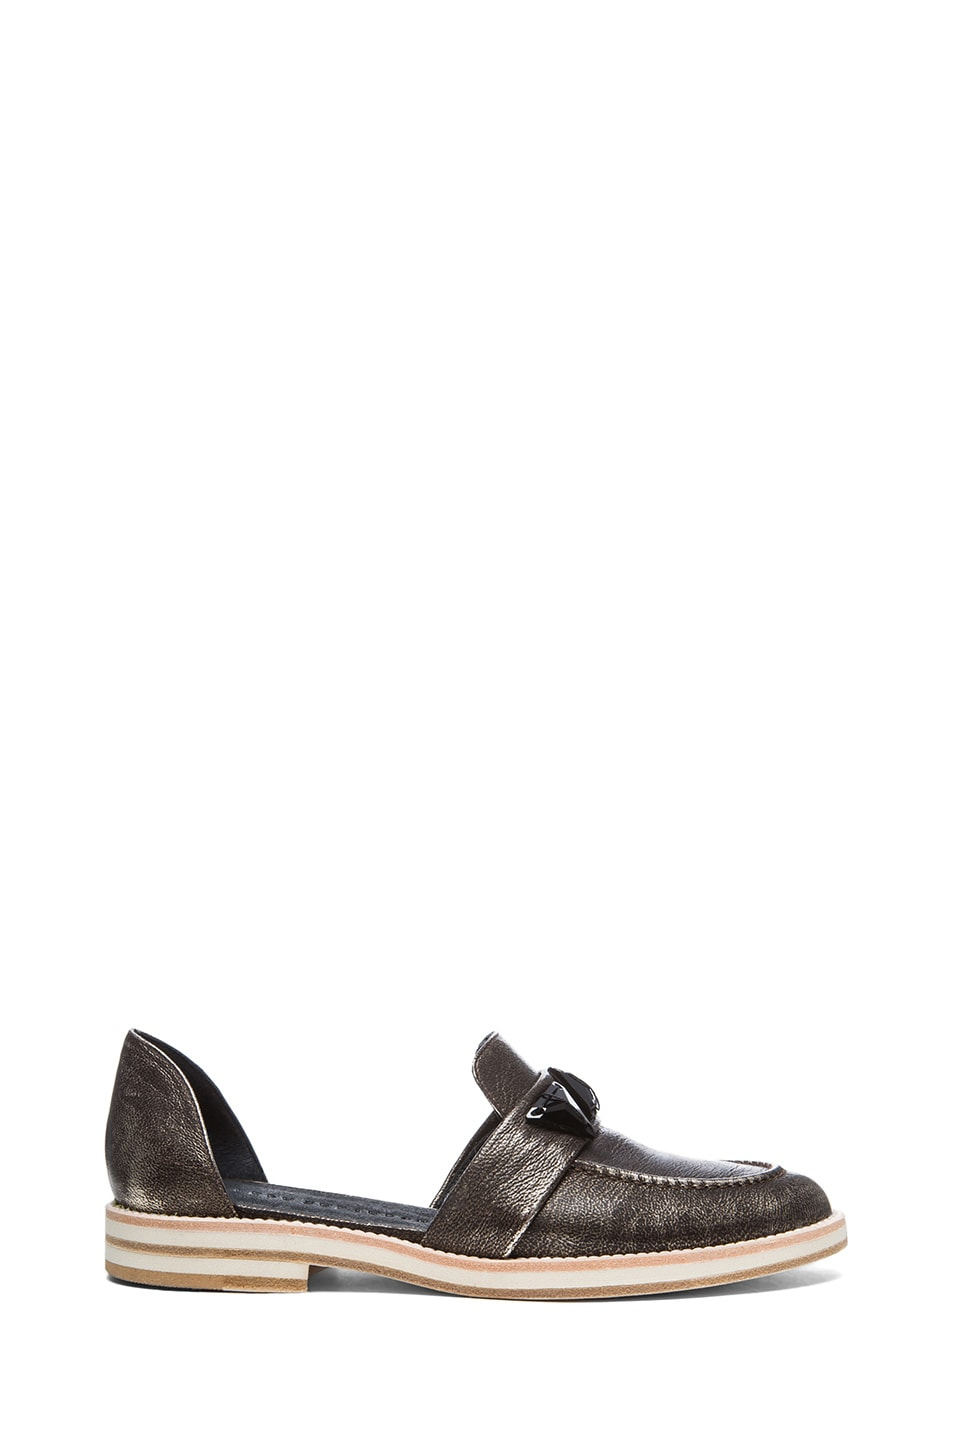 Image 1 of Freda Salvador See Metallic Leather Oxfords in Gold Metallic